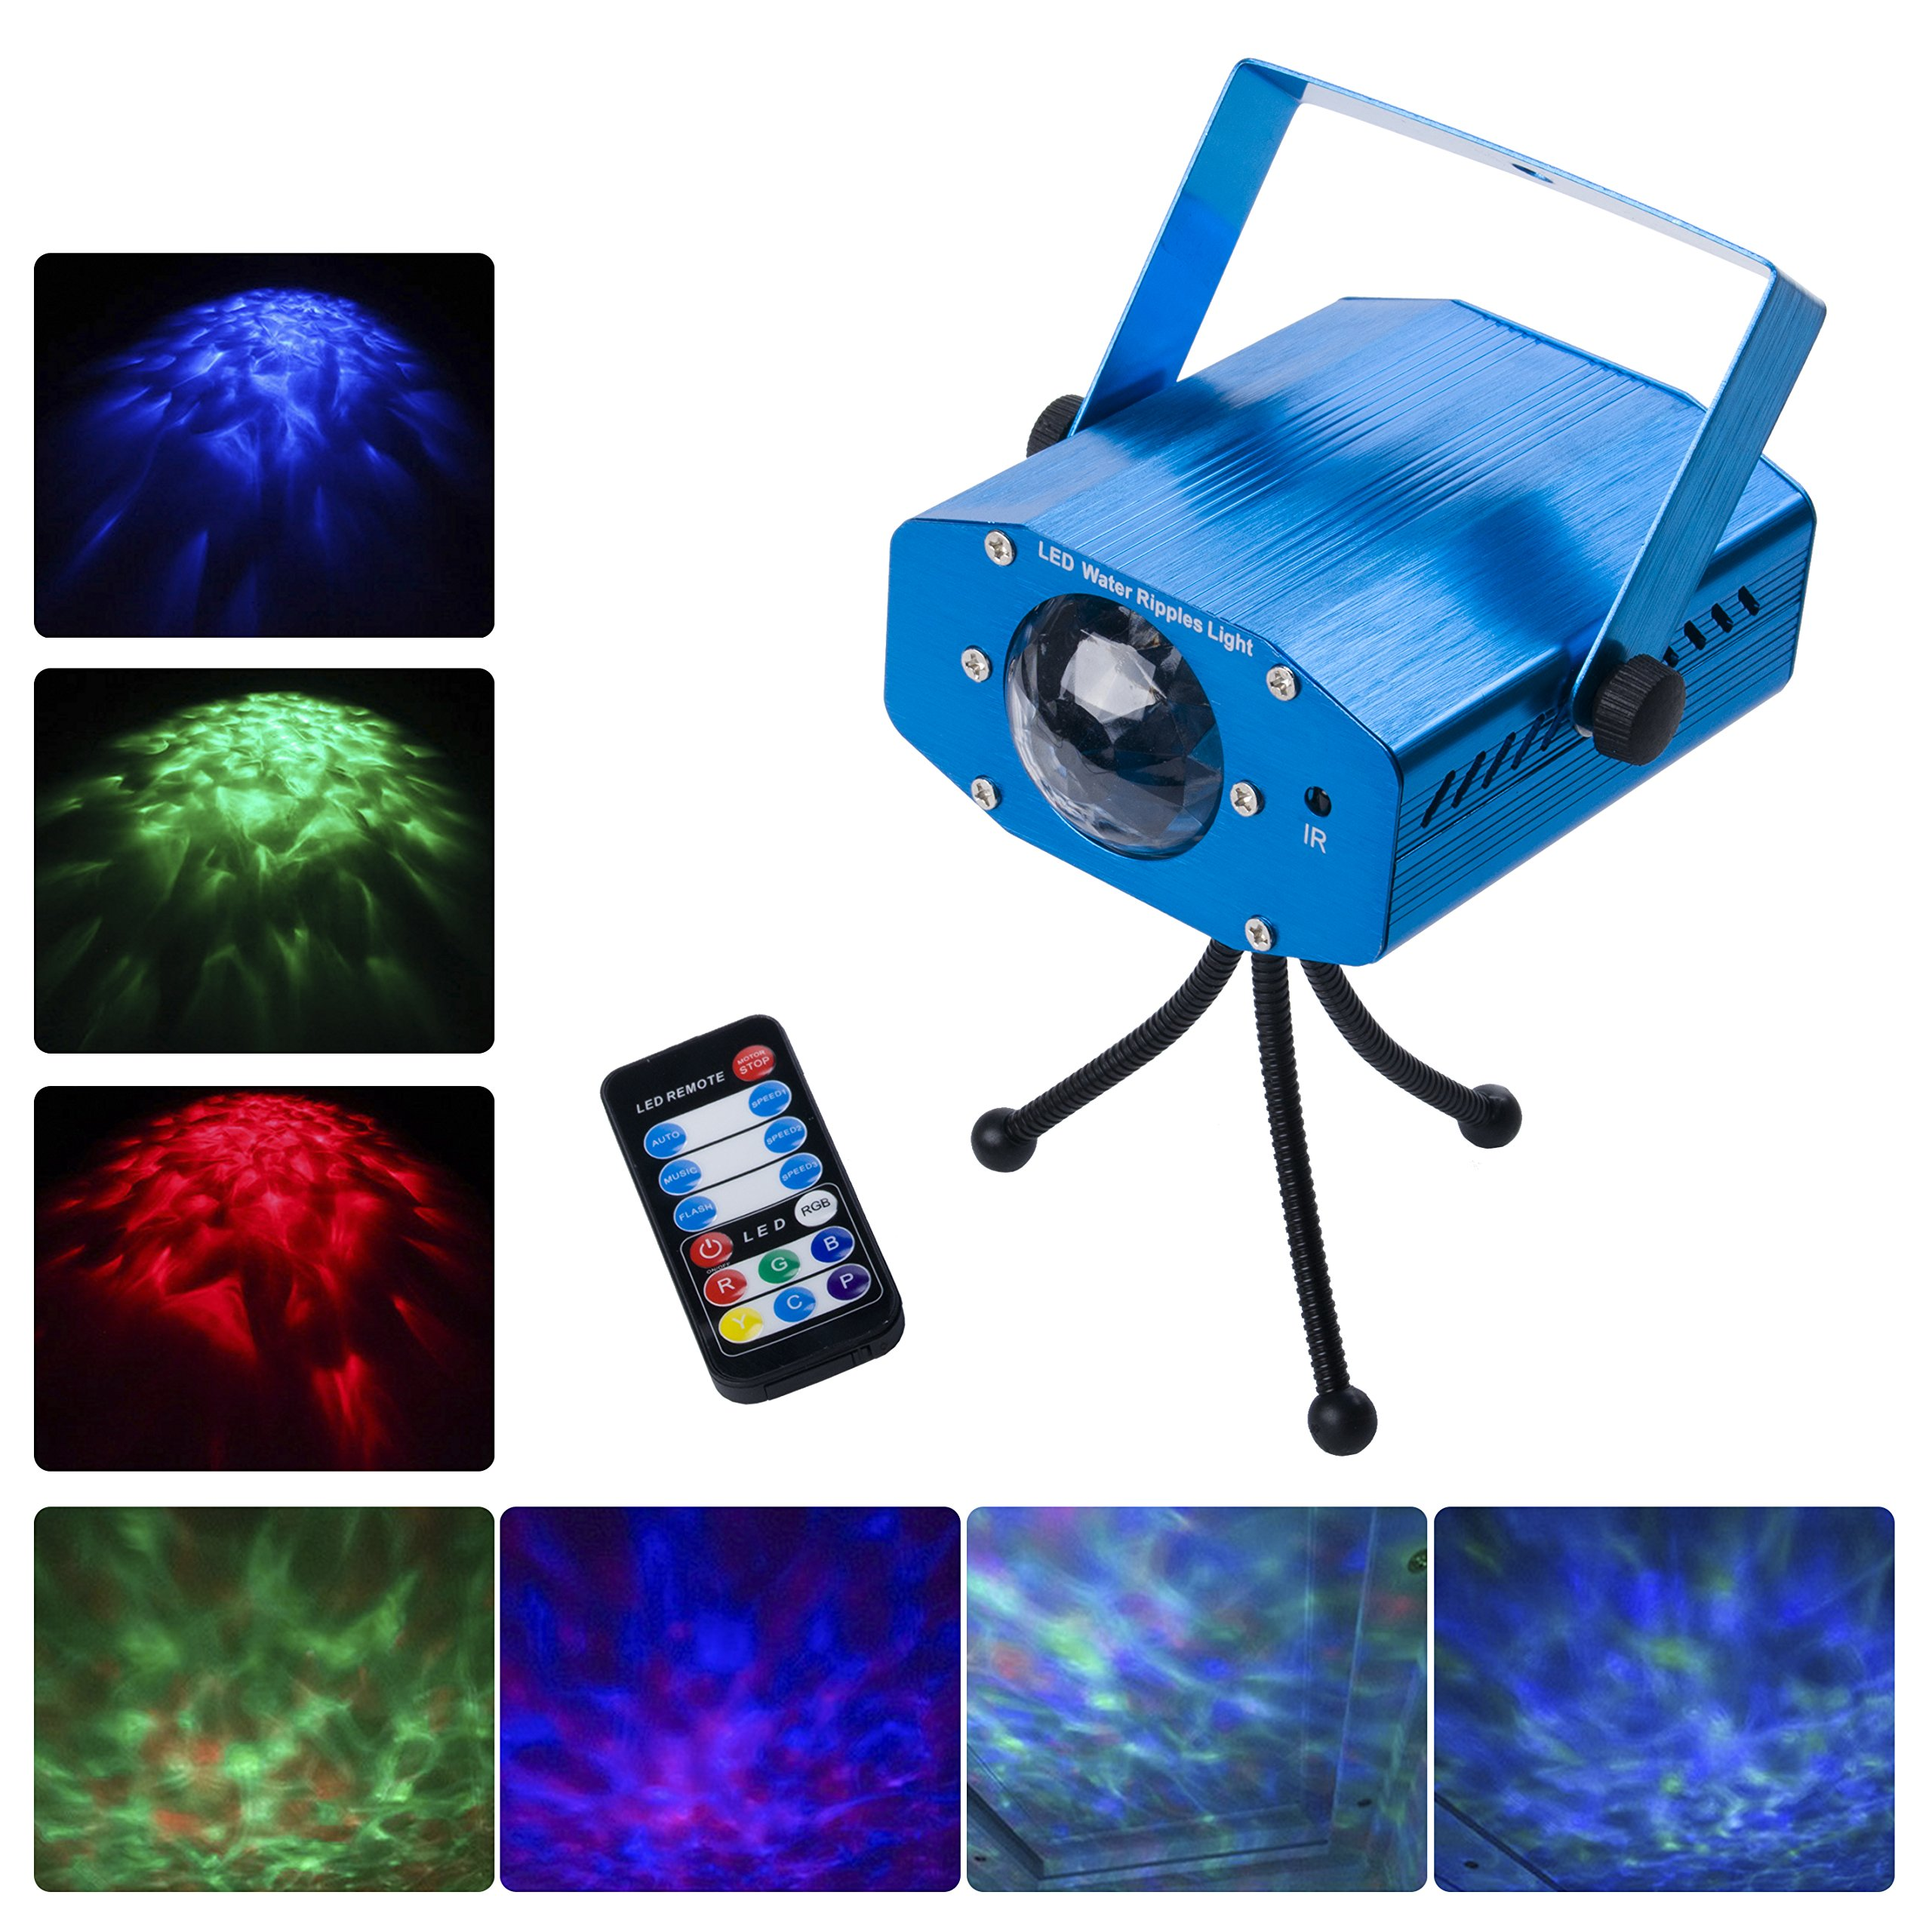 DuaFire Laser Lights, 7 Colors Led Stage Party Light Projector, Strobe Water Ripples Lighting for Wedding, Home Karaoke, Club, Bar, Disco and DJ